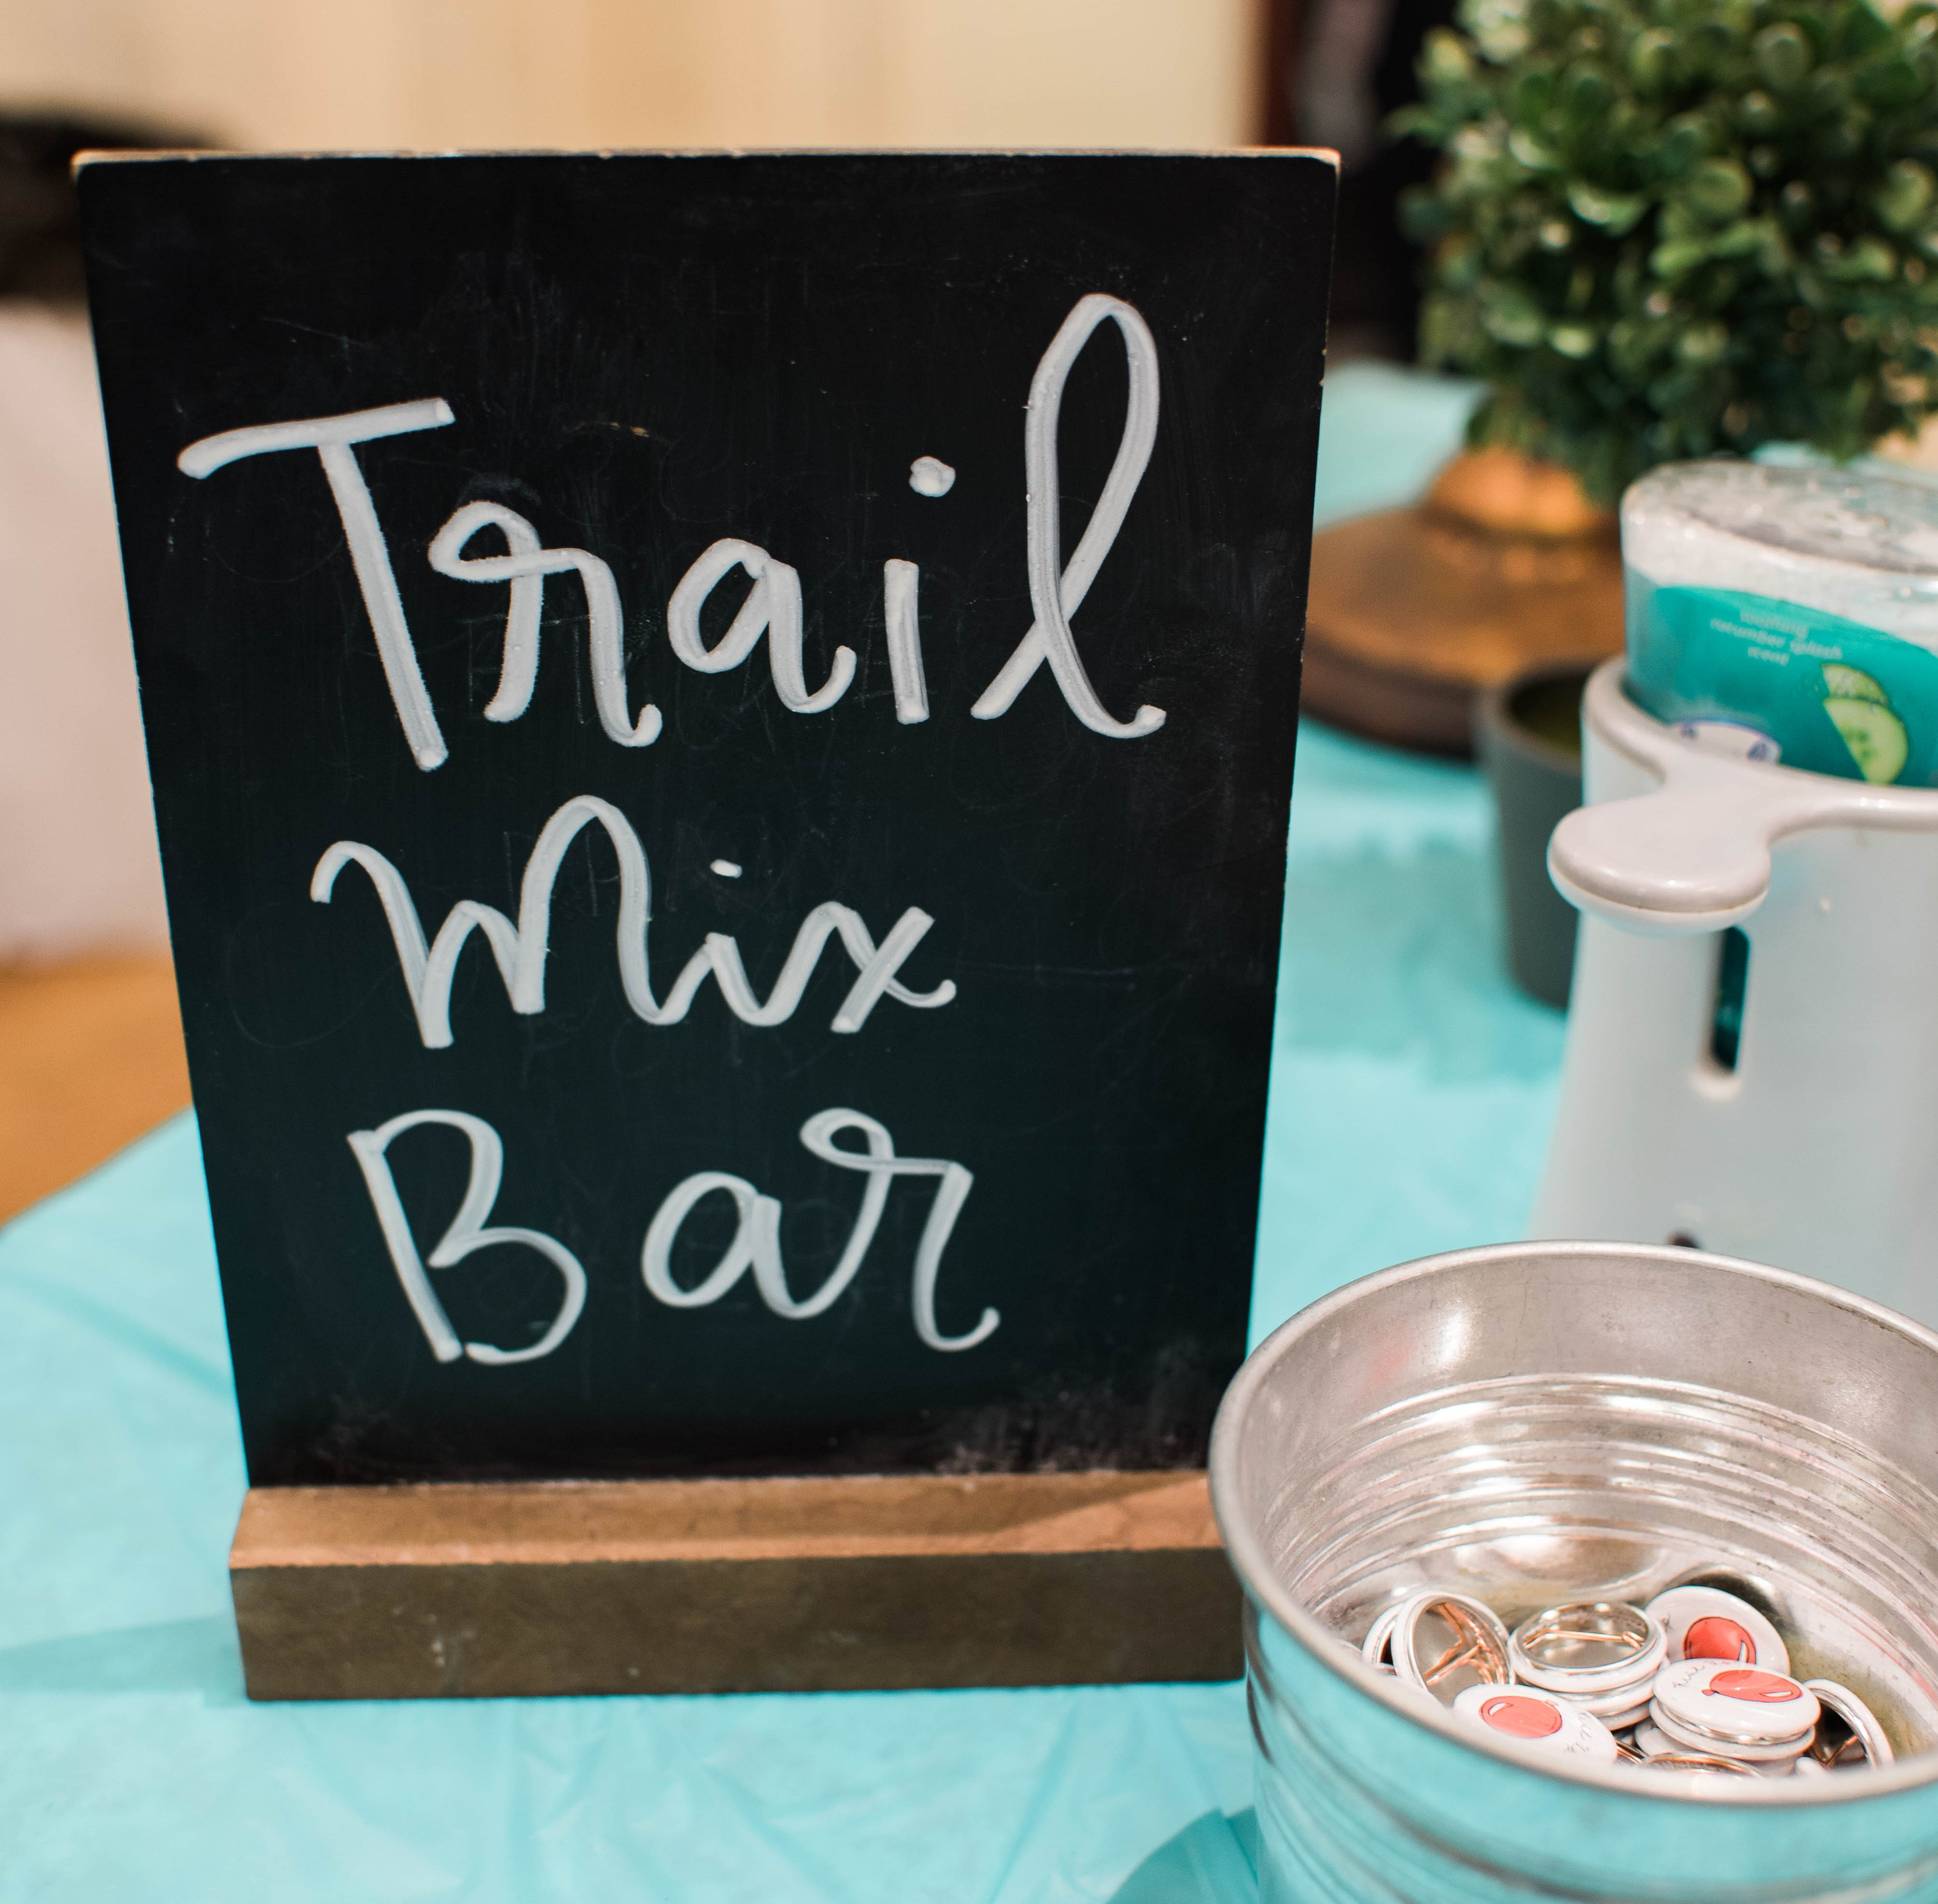 5 DELICIOUS TRAIL MIX RECIPES